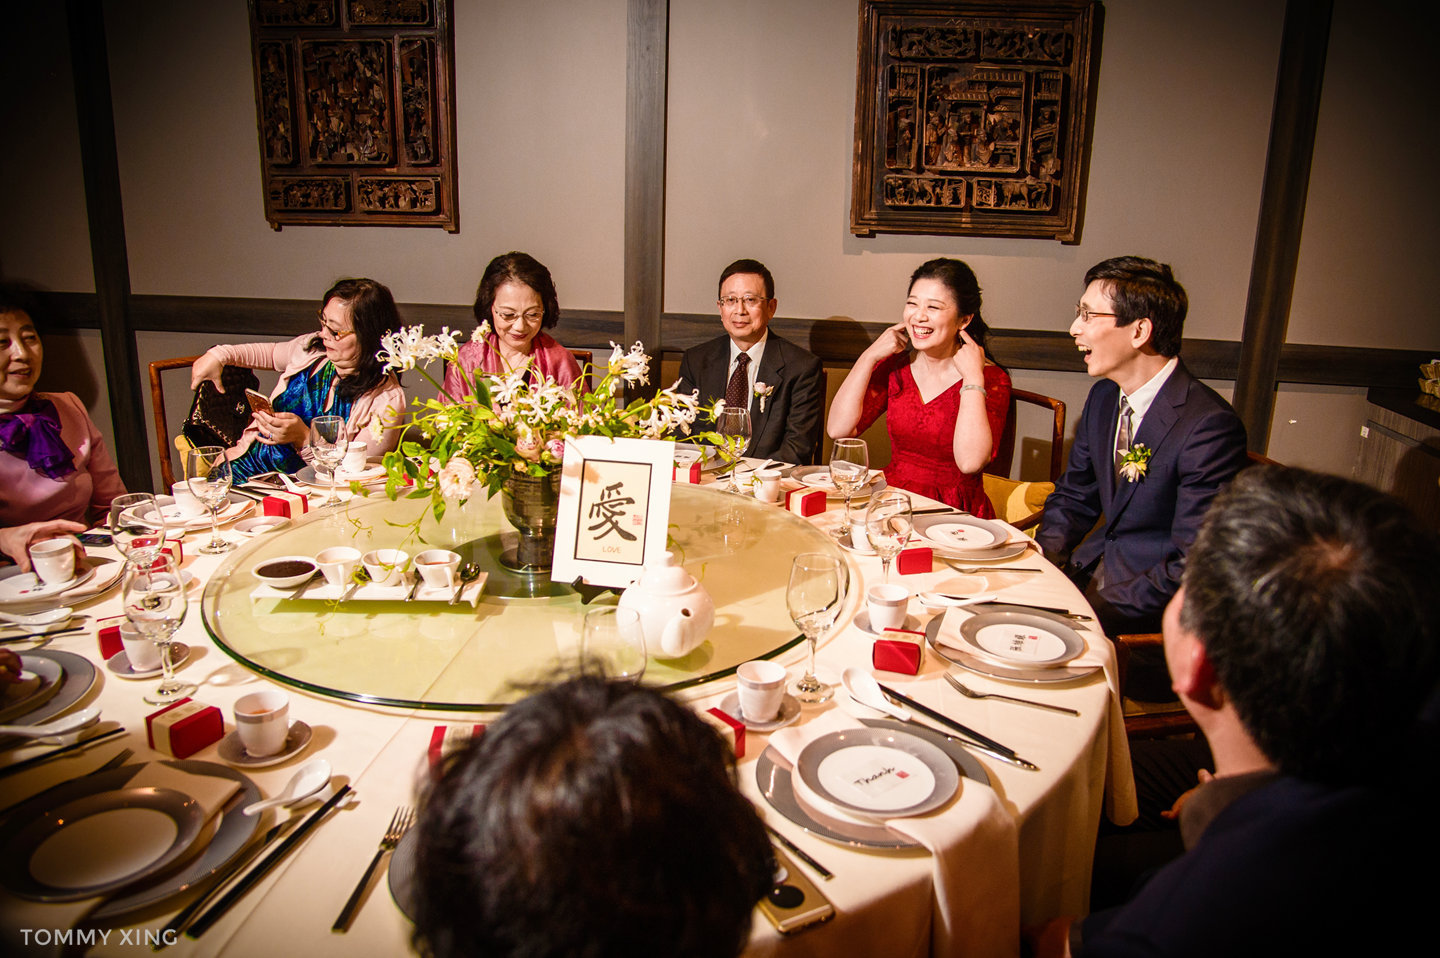 San Francisco Wedding Photography Valley Presbyterian Church WEDDING Tommy Xing Photography 洛杉矶旧金山婚礼婚纱照摄影师115.jpg